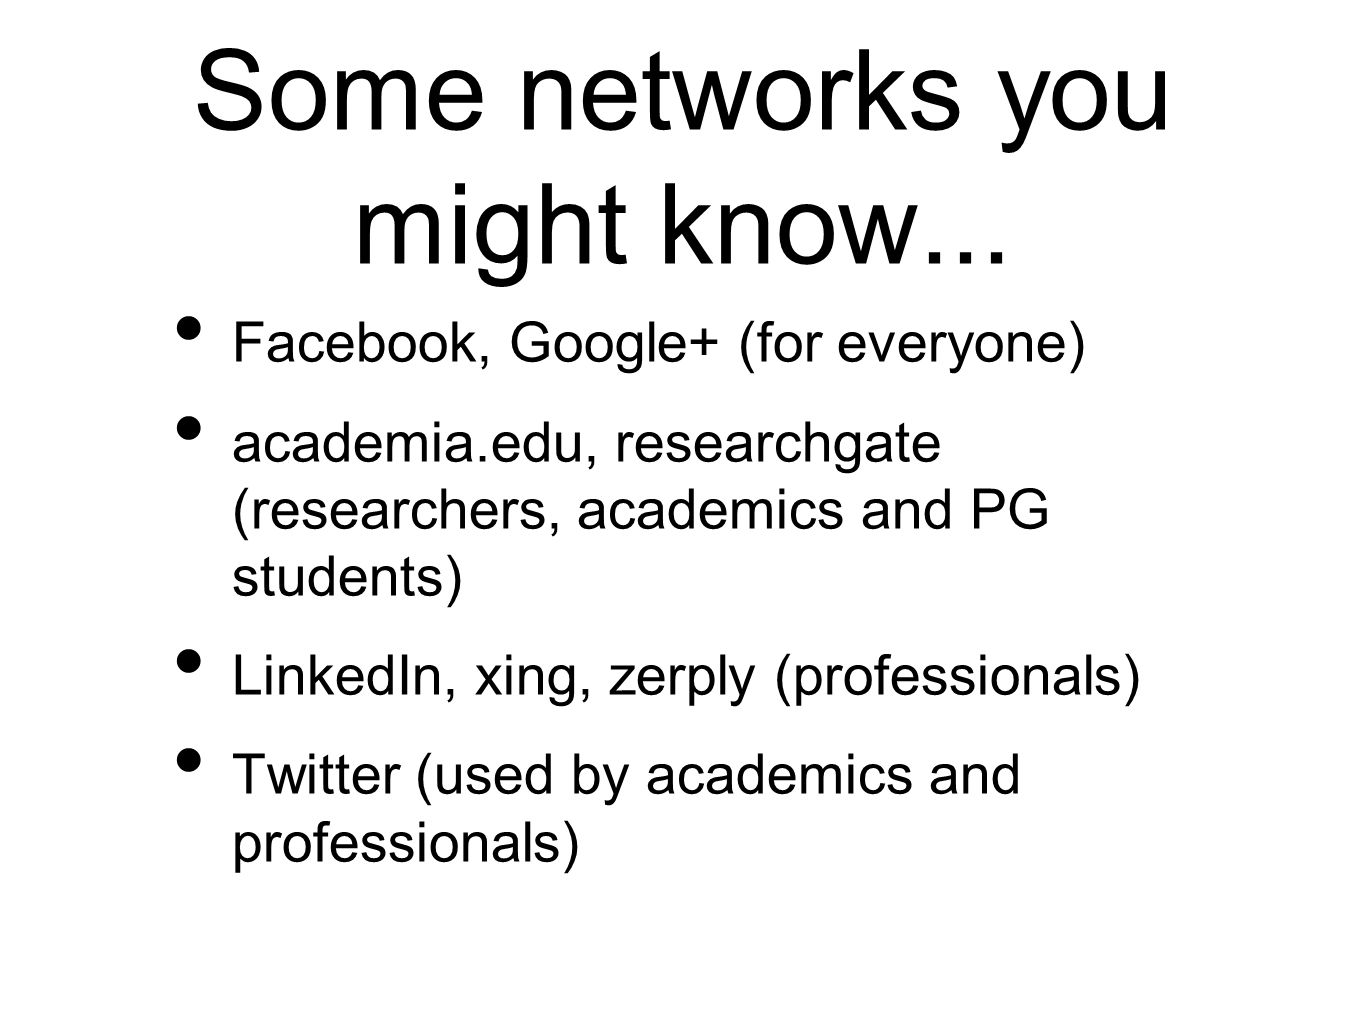 Some networks you might know... Facebook, Google+ (for everyone) academia.edu, researchgate (researchers, academics and PG students) LinkedIn, xing, z